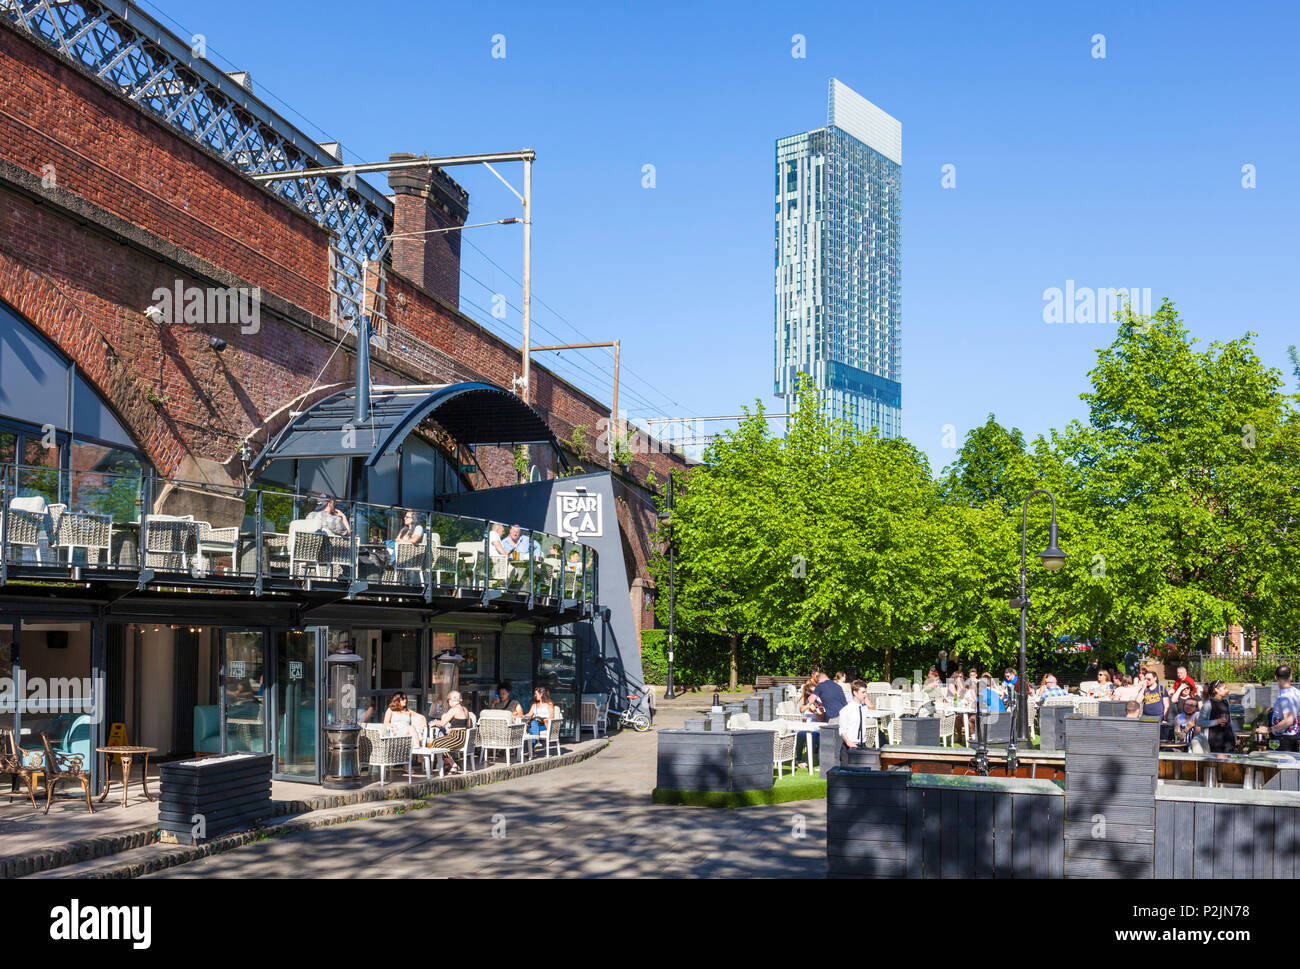 England Manchester England greater Manchester City centre city center view of the beetham tower and bridgewater canal with narrow boat manchester uk - Stock Image